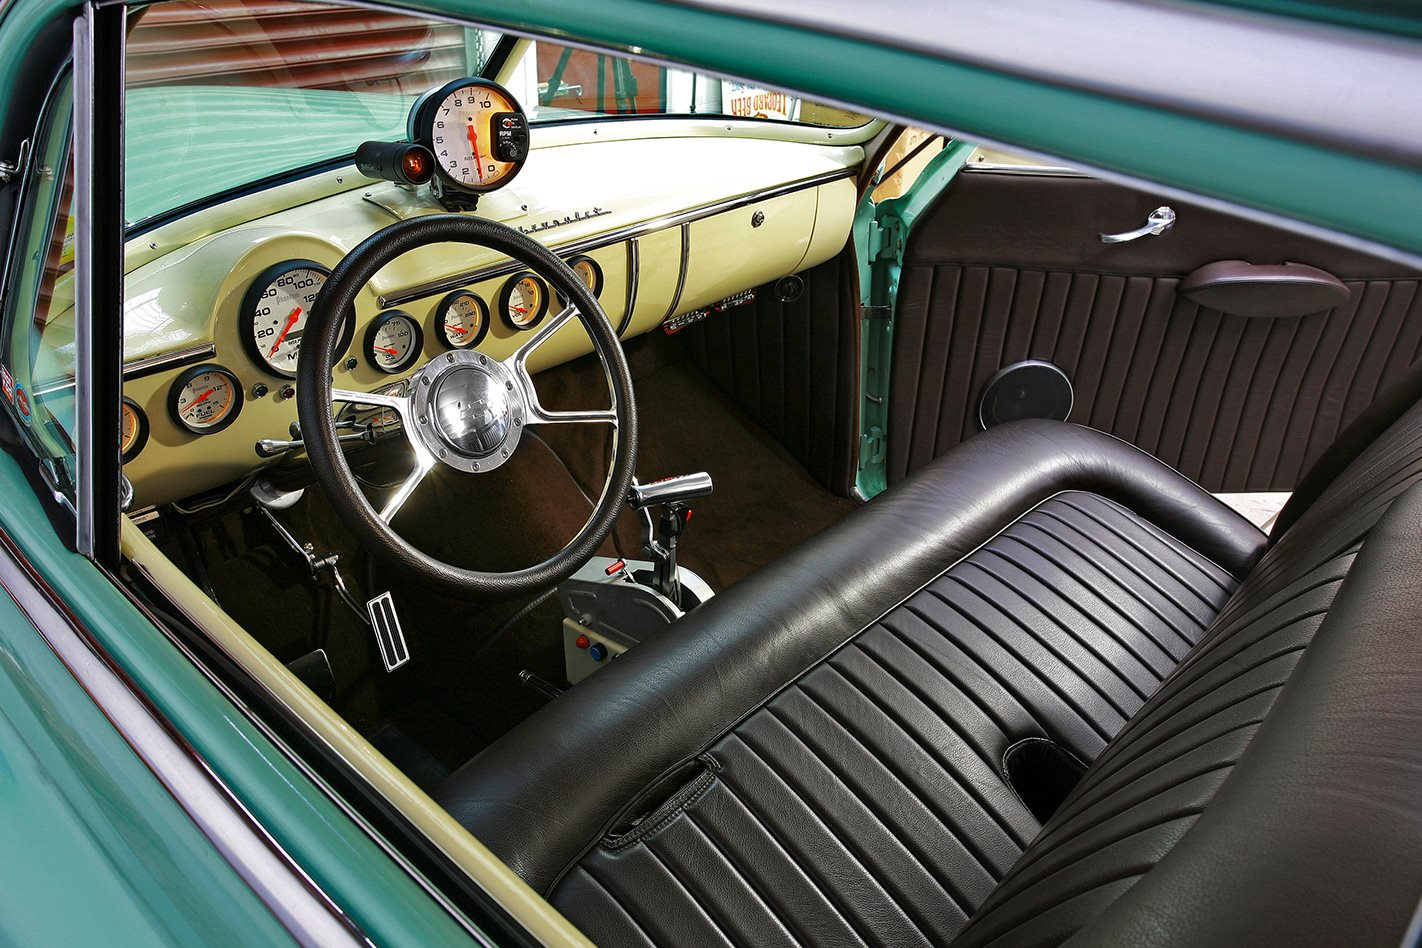 1950 V8 CHEV COUPE INTERIOR